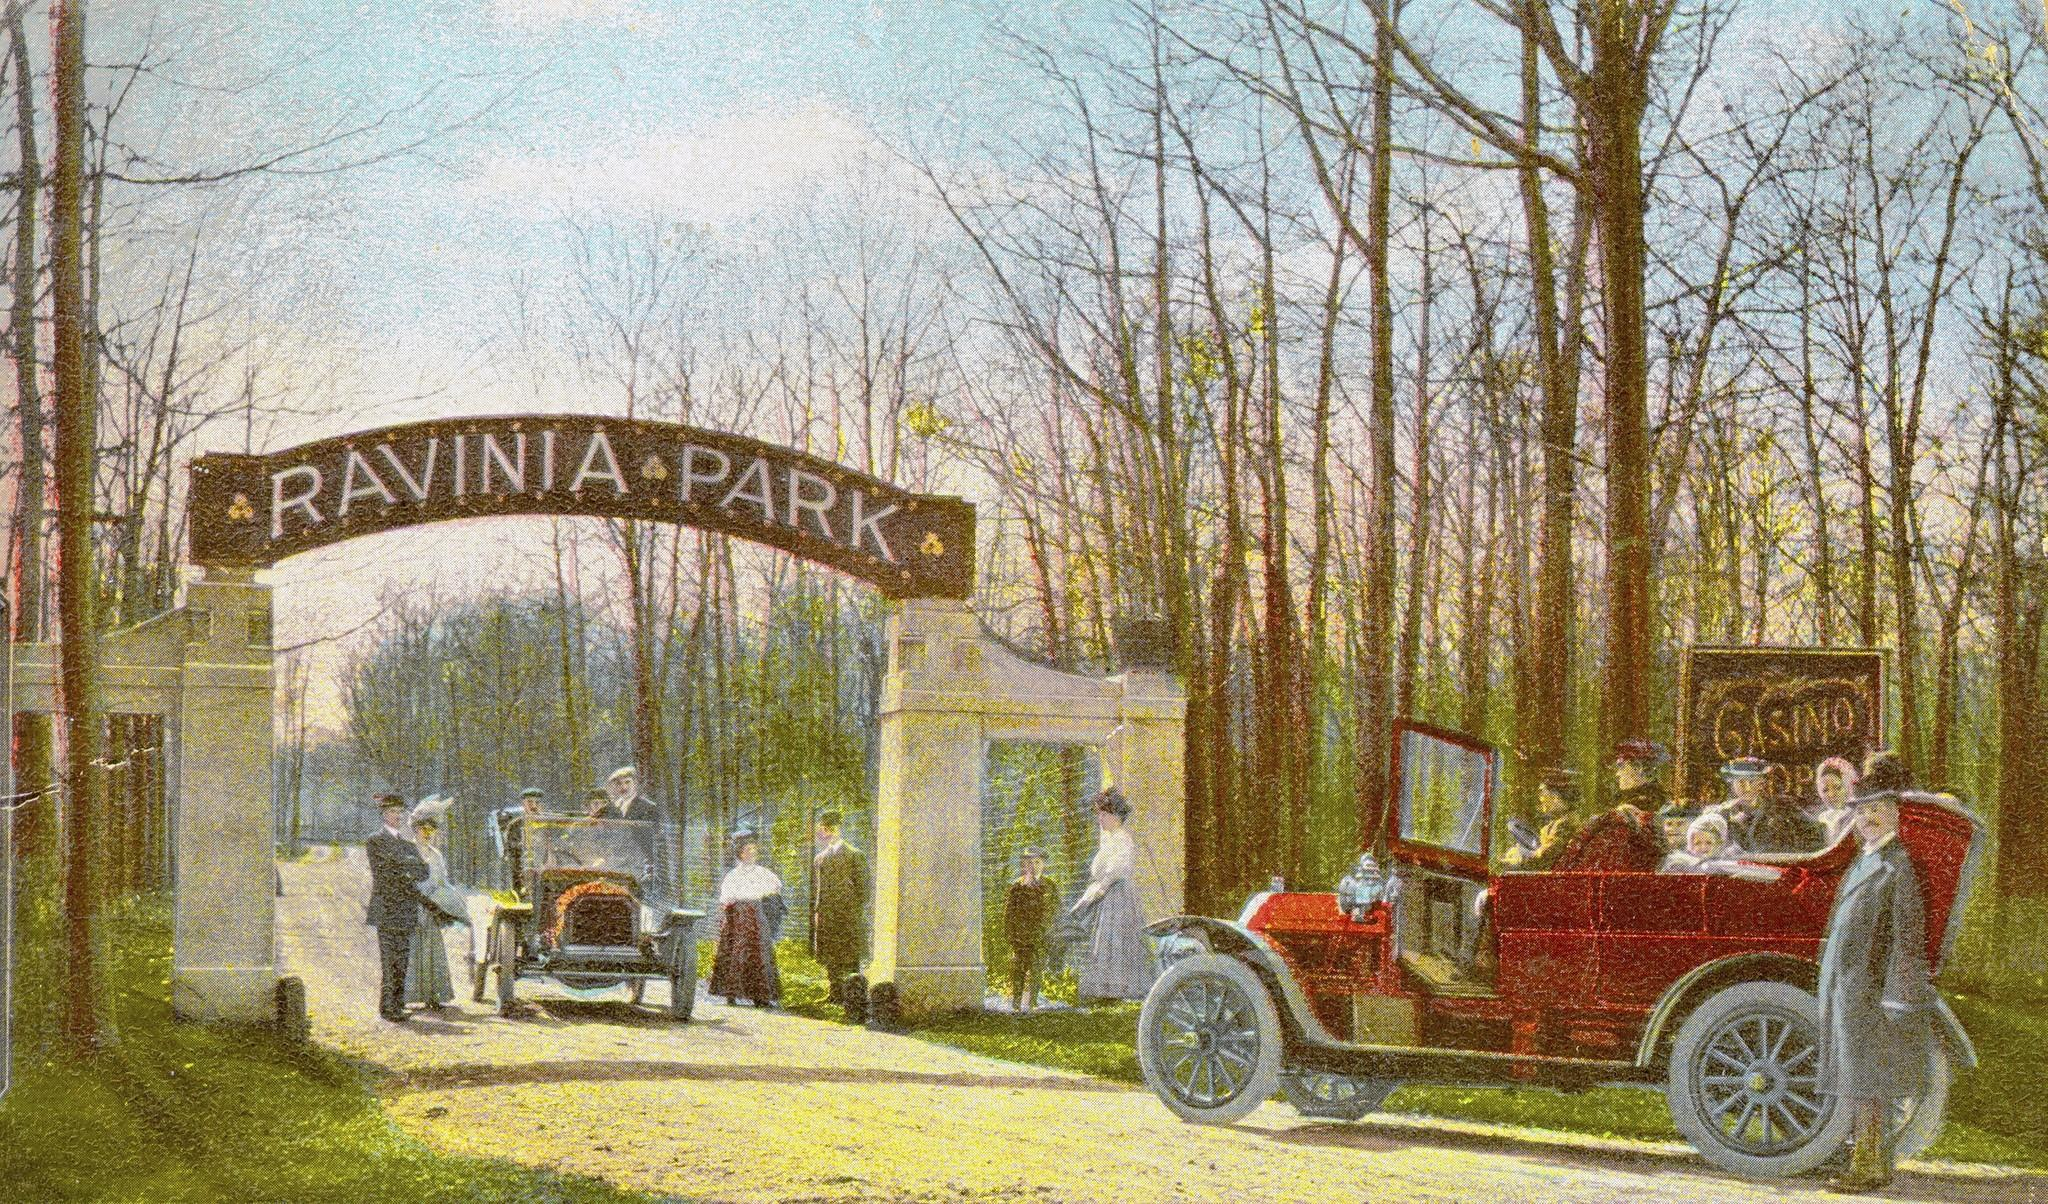 Entrance to Ravinia Park post card, circa 1908. Published by The Rotograph Co. in Germany.